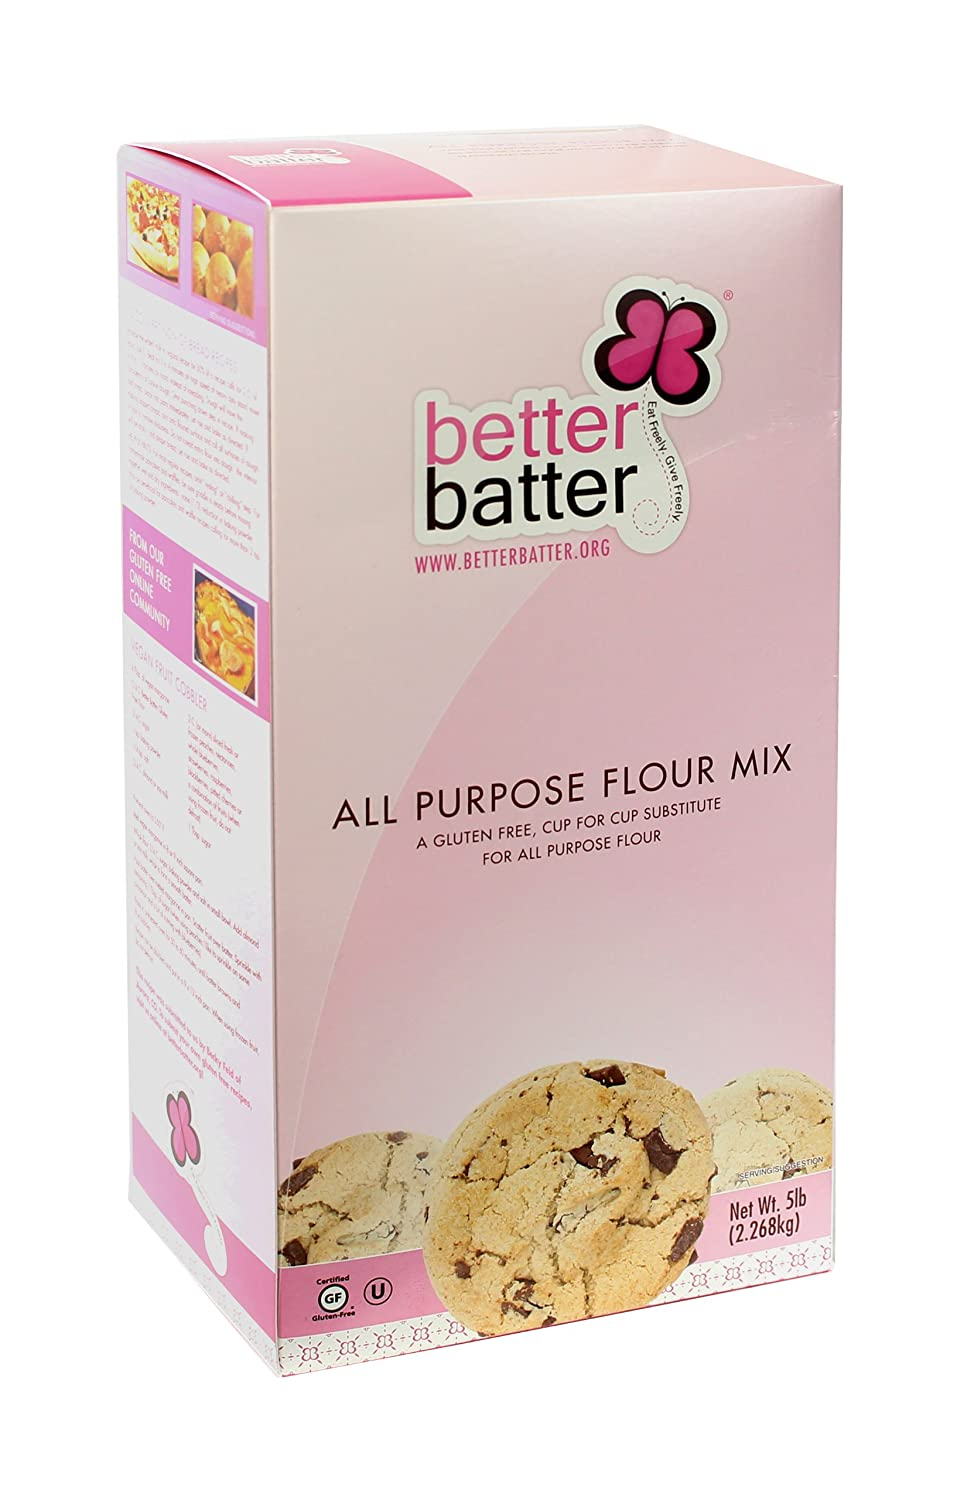 Gluten Free All Purpose Flour Mix